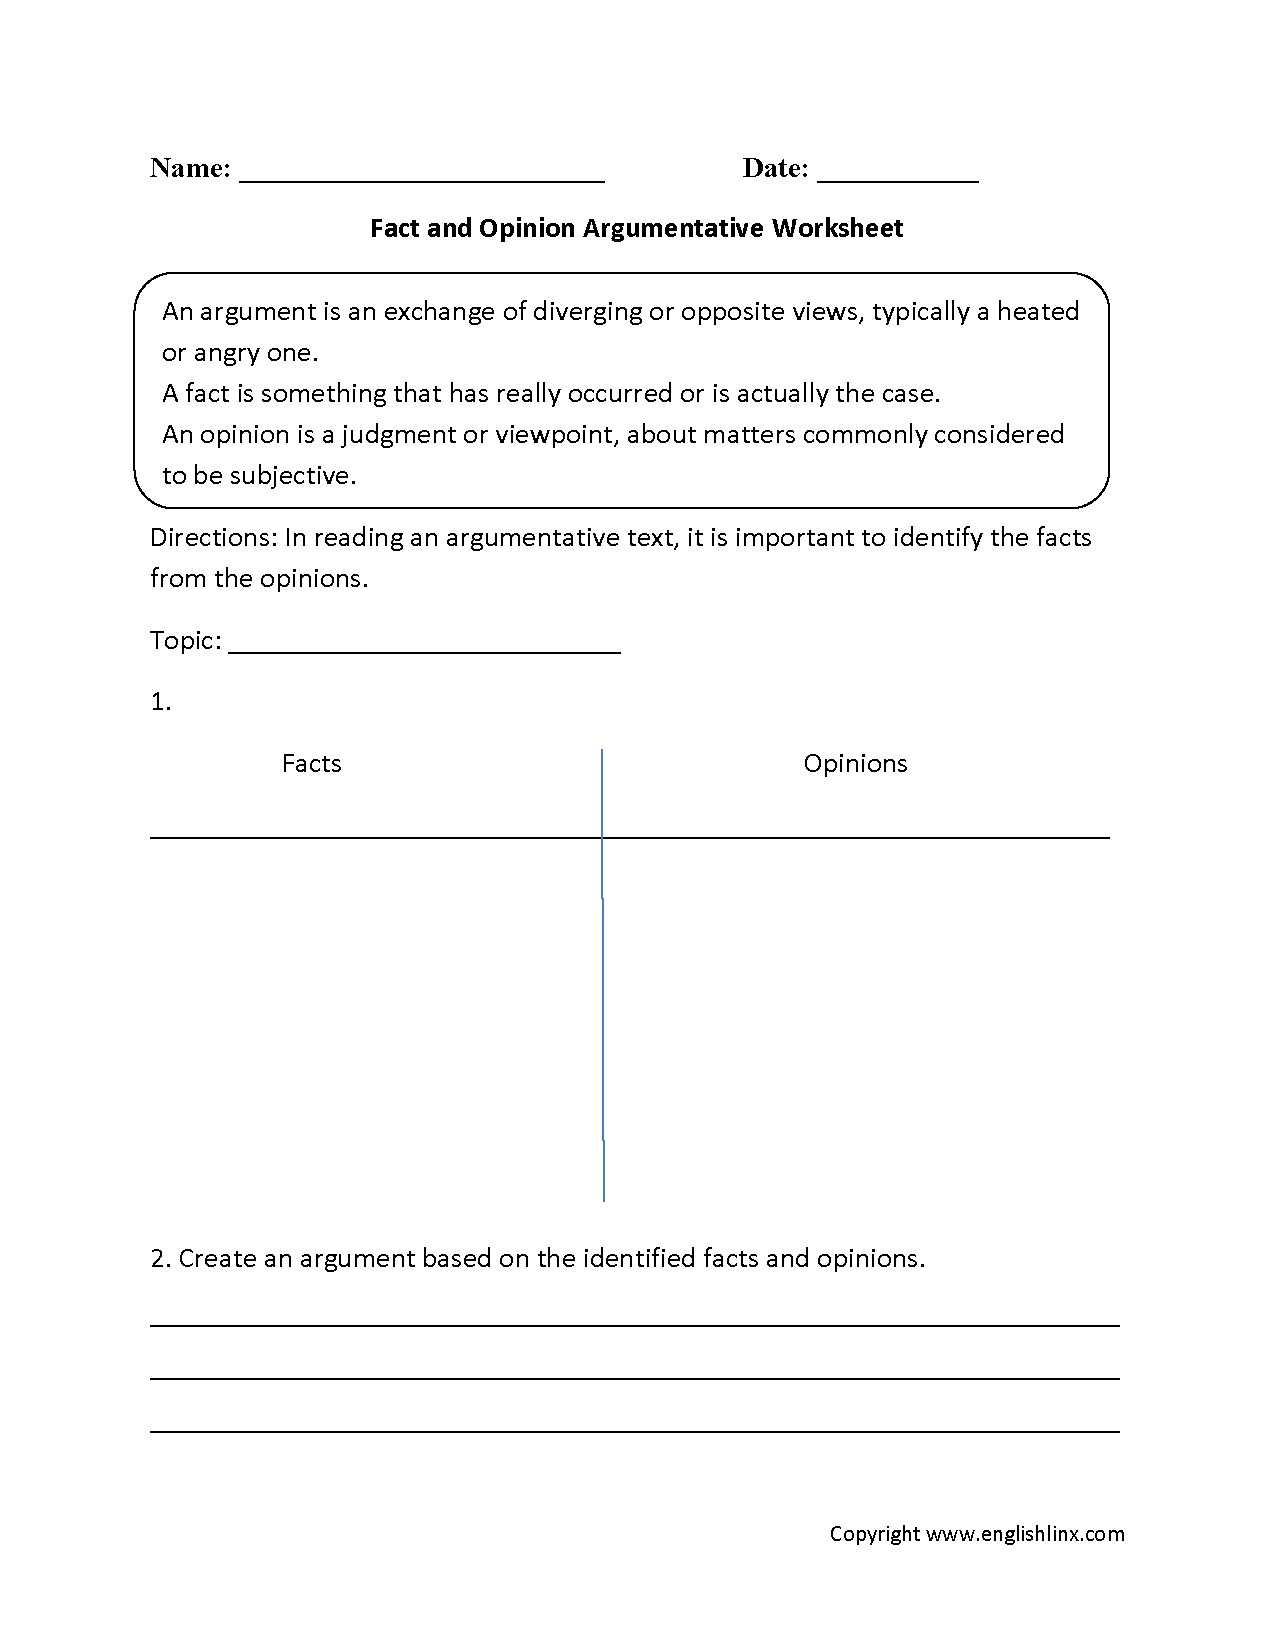 Worksheet Fact Or Opinion Worksheet Carlos Lomas Worksheet For